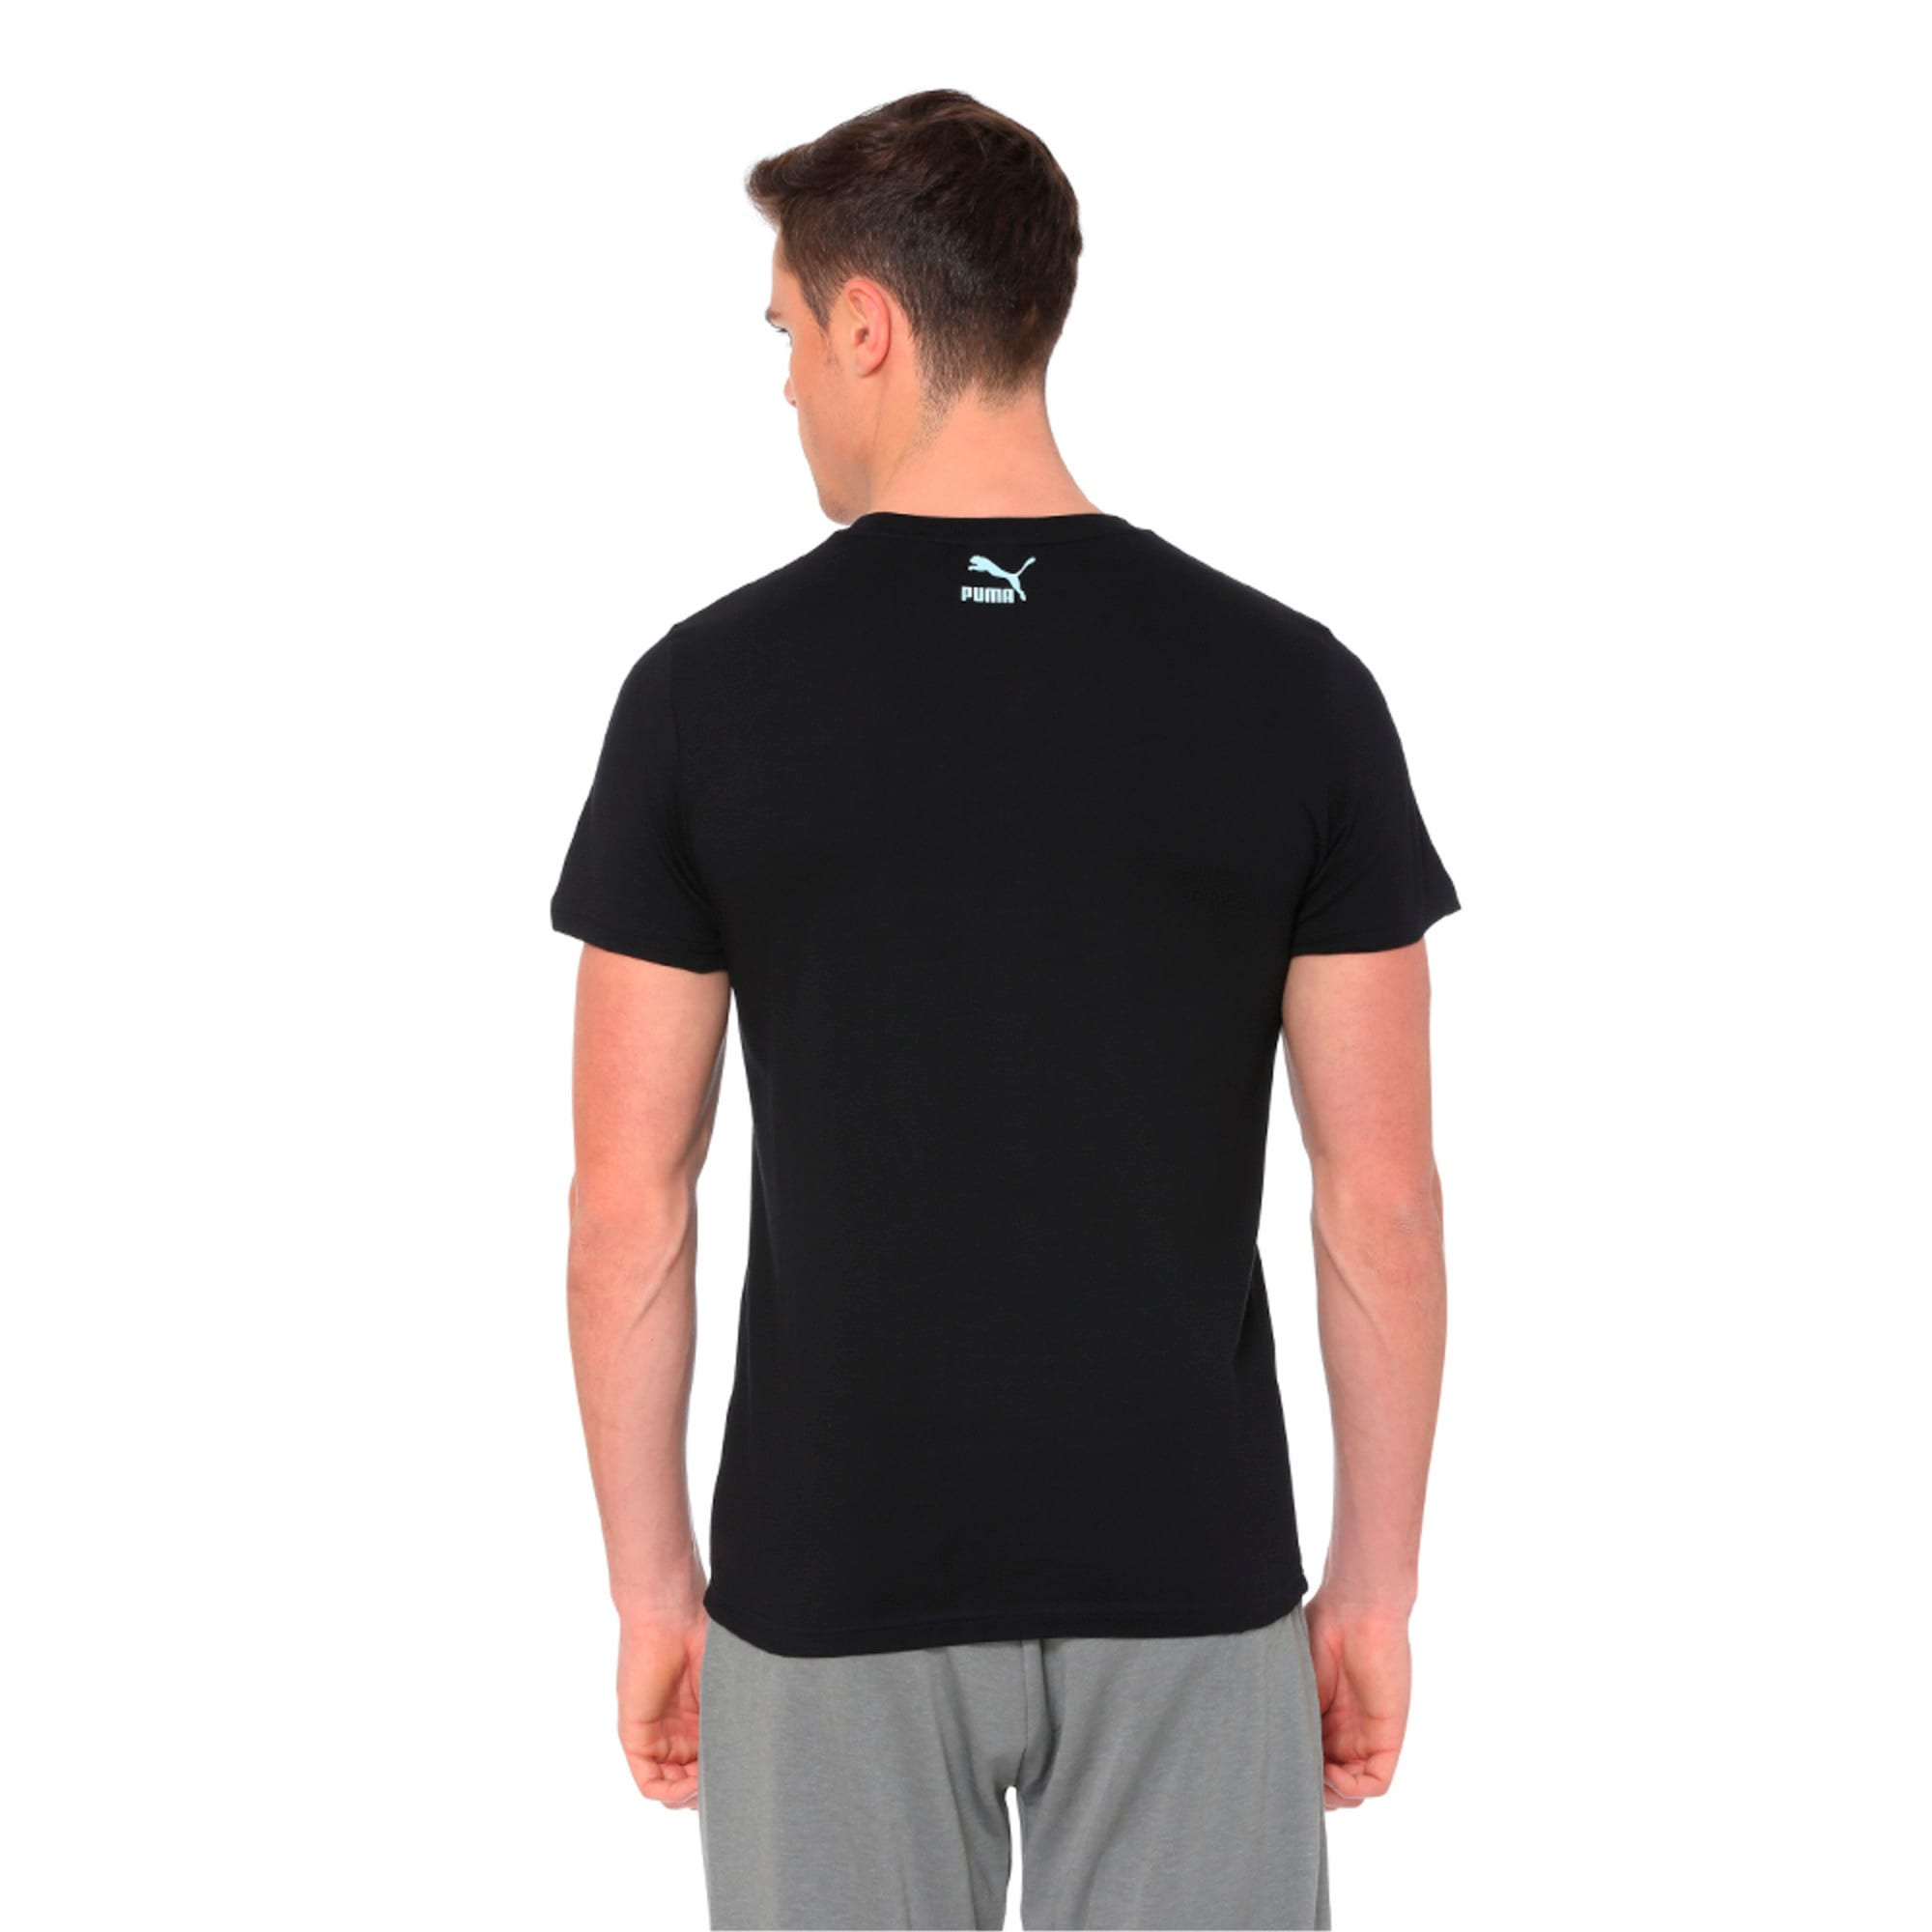 Thumbnail 5 of Graphic Puma Wave Tee, Cotton Black, medium-IND